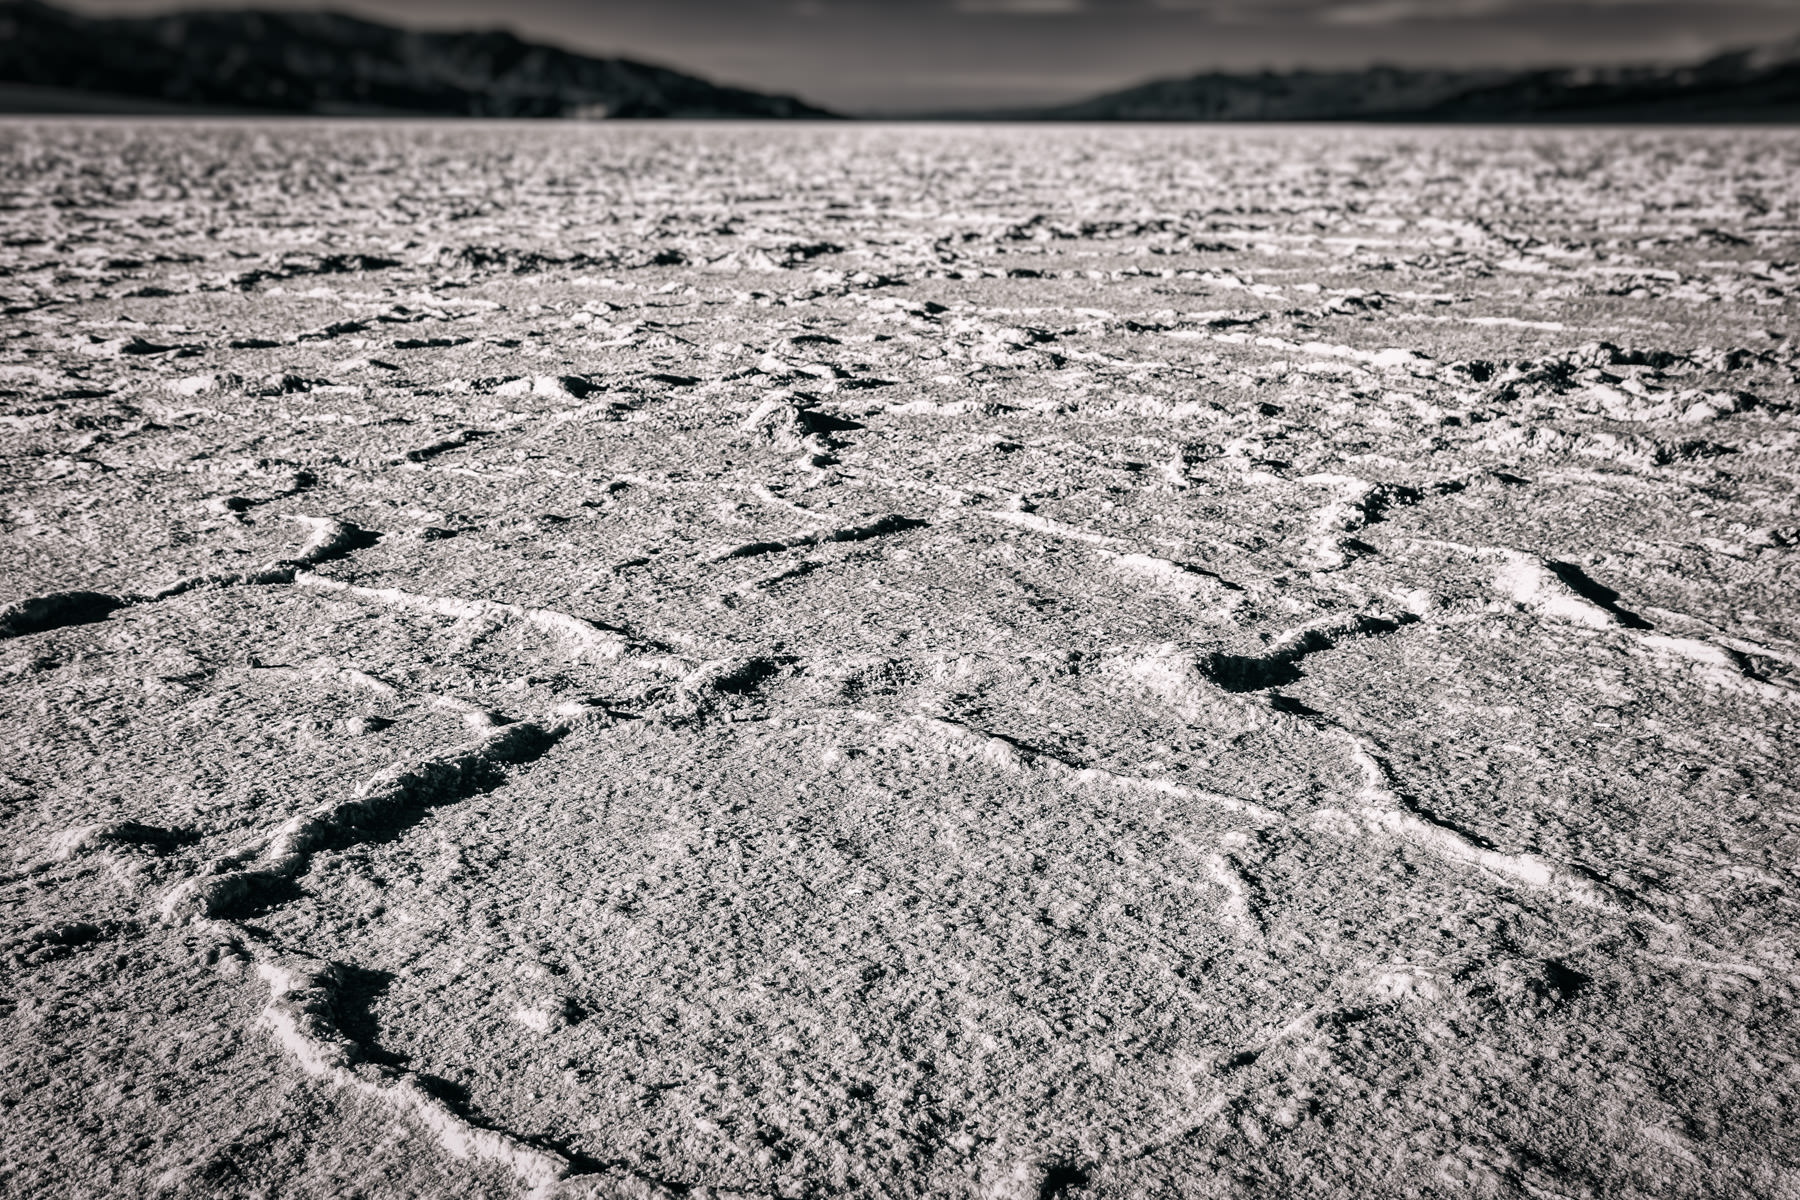 The salt flats at Death Valley National Park's Badwater Basin—the lowest point in North America at 282 feet (86 meters) below sea level.